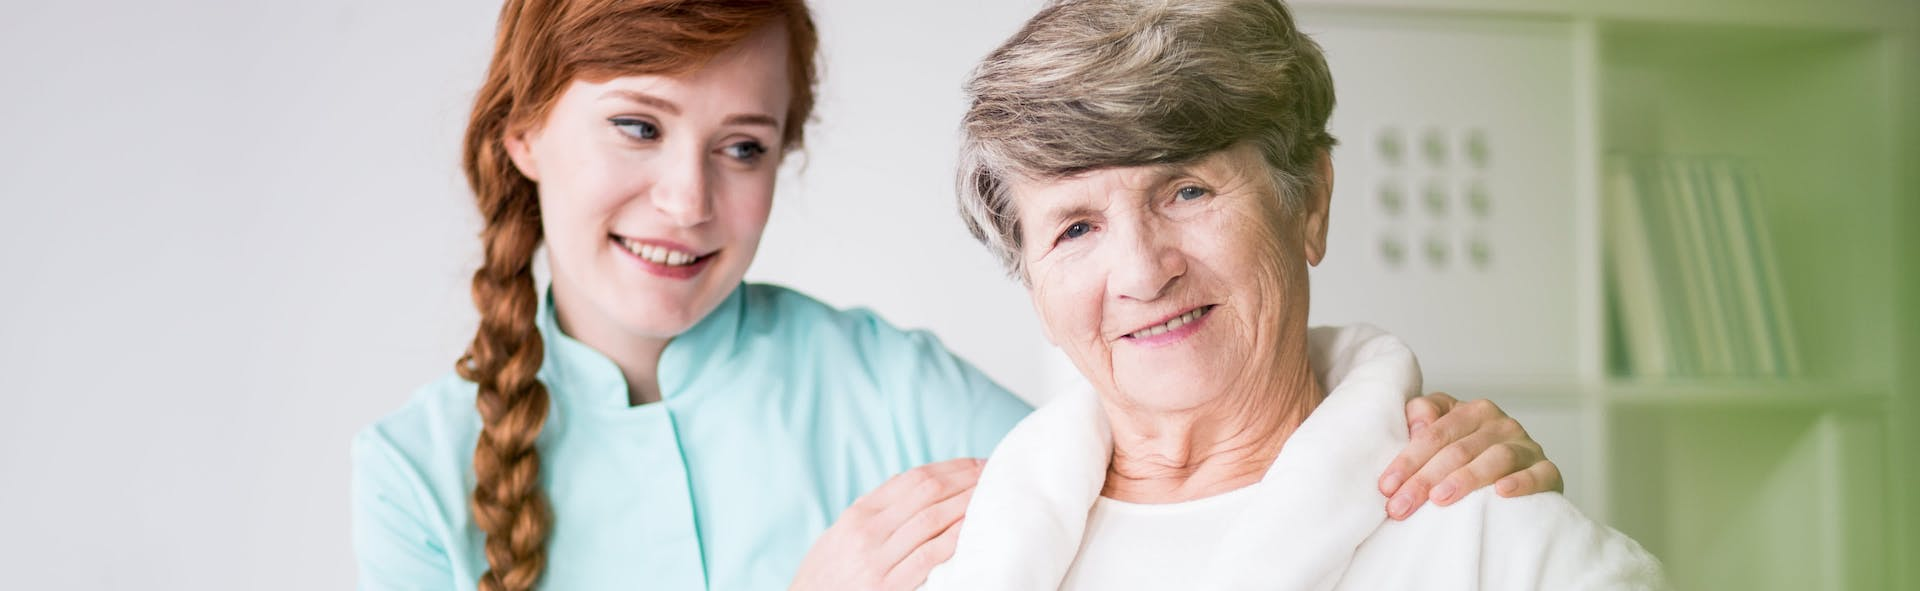 envato-elements/envato-elements-nurse-and-elderly-patient-in-hopital-PHVCFSG-gz5.jpg